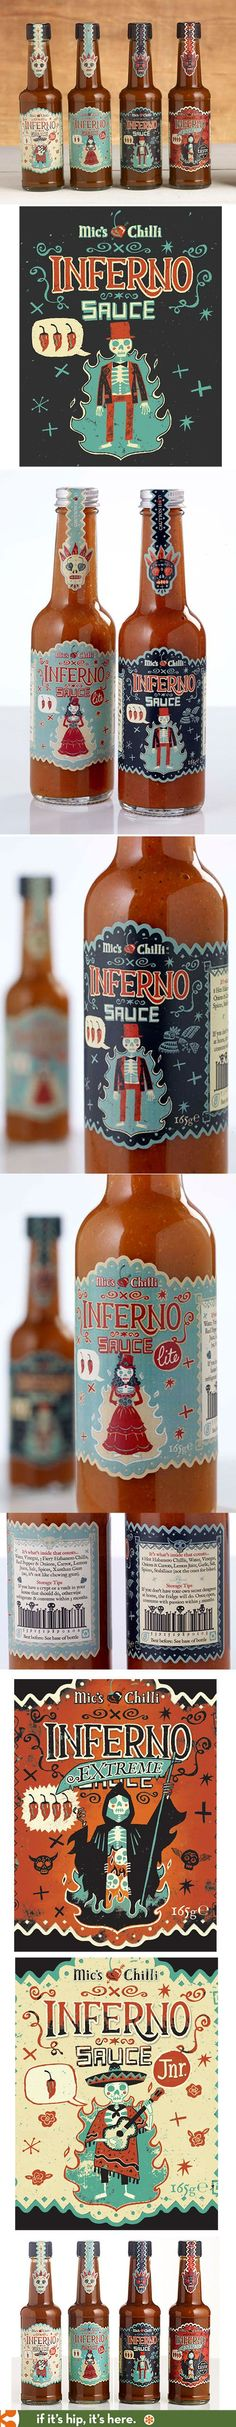 Here you go Dimitris barcode and packaging example in fabulous label designs for Mic's Chilli Inferno Sauces by Steve Simpson. PD